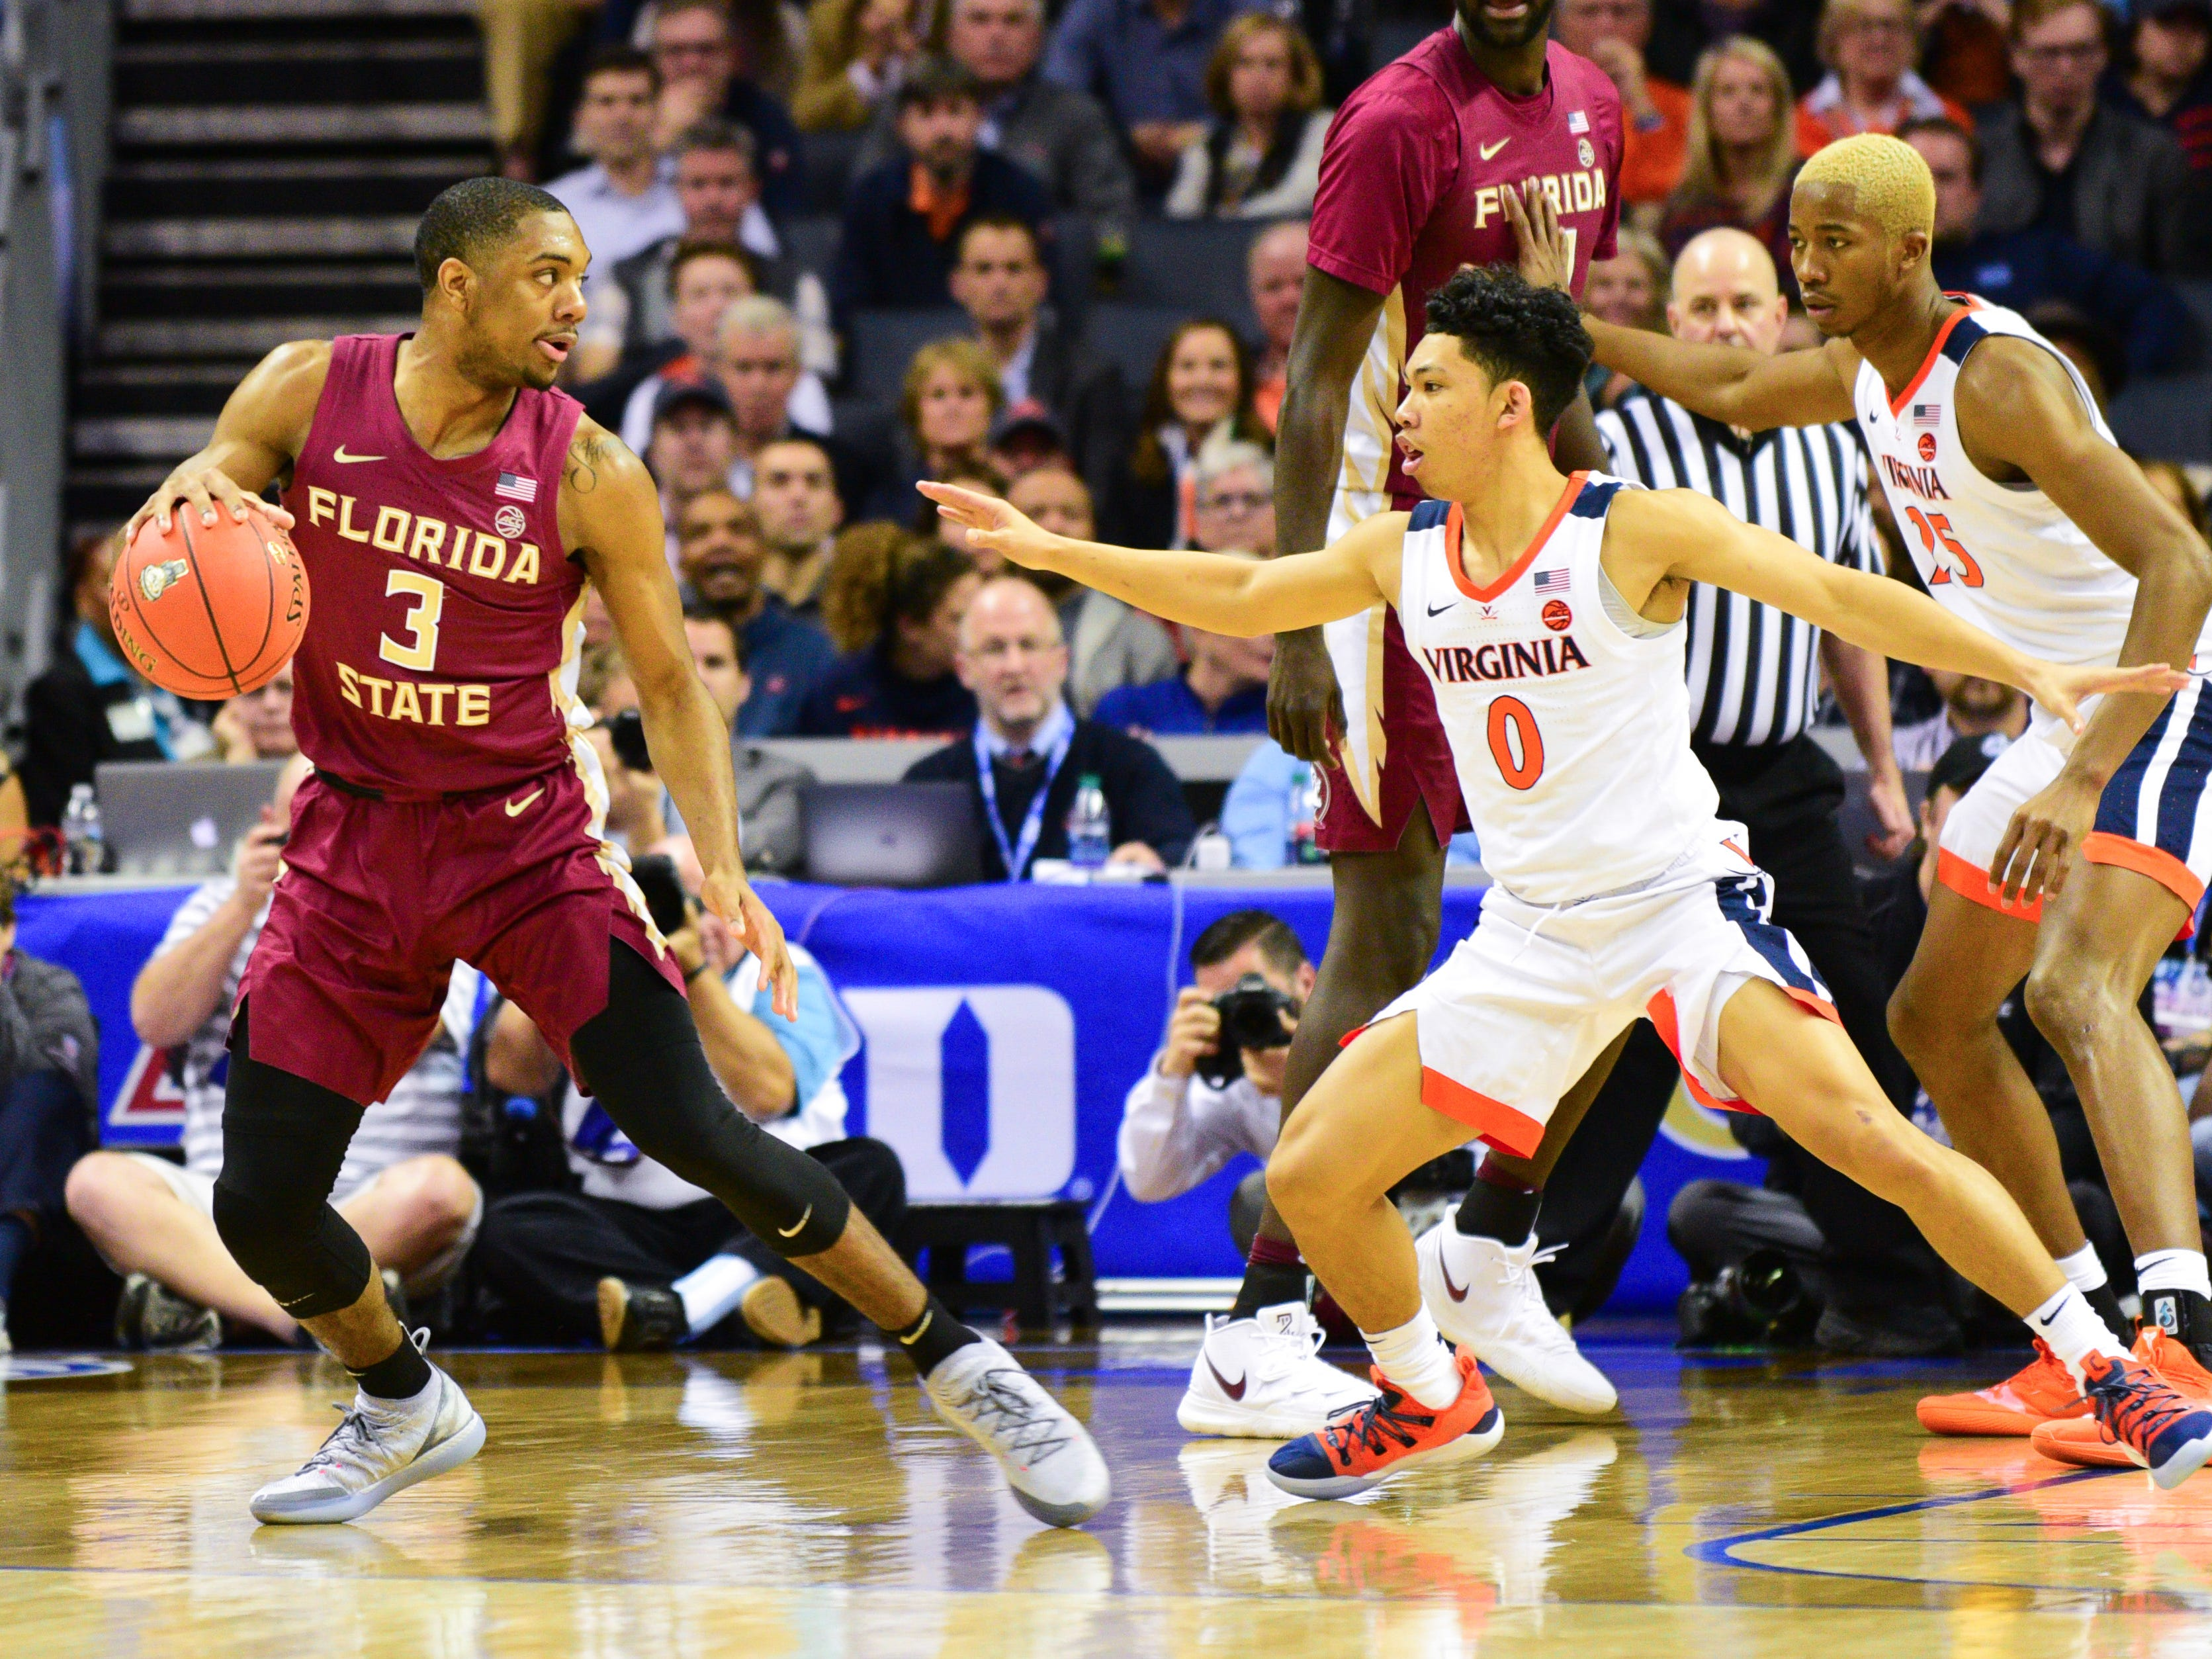 Florida State junior guard Trent Forrestt looks for an opening in the Virginia defense during the first half of the ACC Tournament Semifinals at the Spectrum Center in Charlotte on Friday.